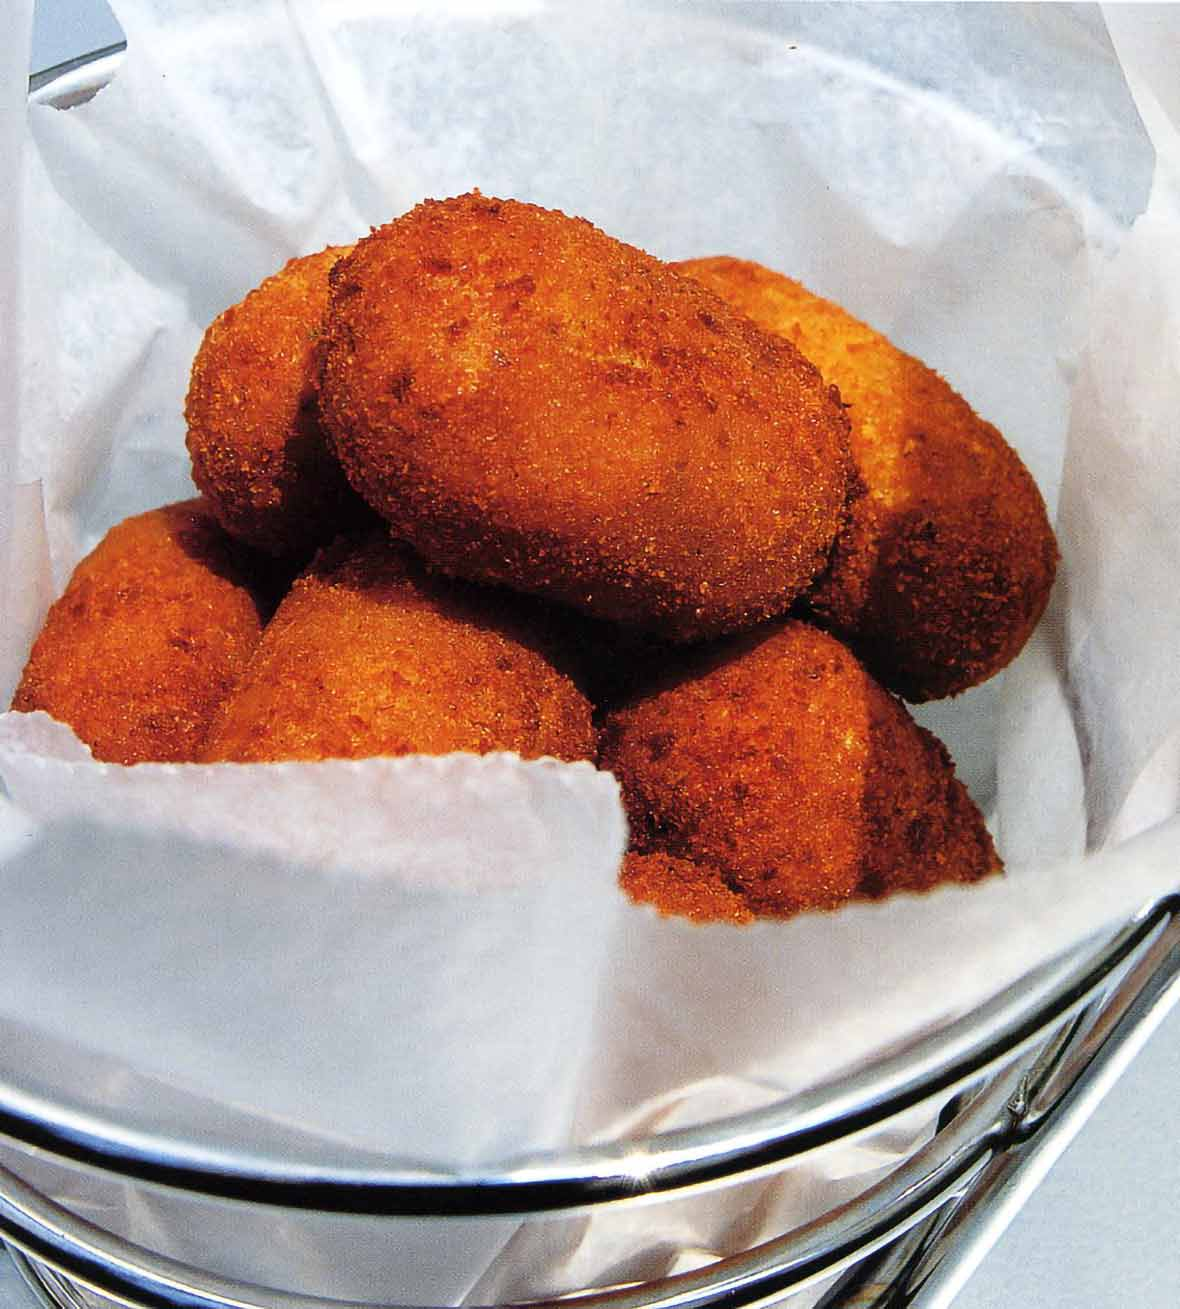 Batch of deep-fried oval Spanish serrano ham and chicken fritters in a metal basket